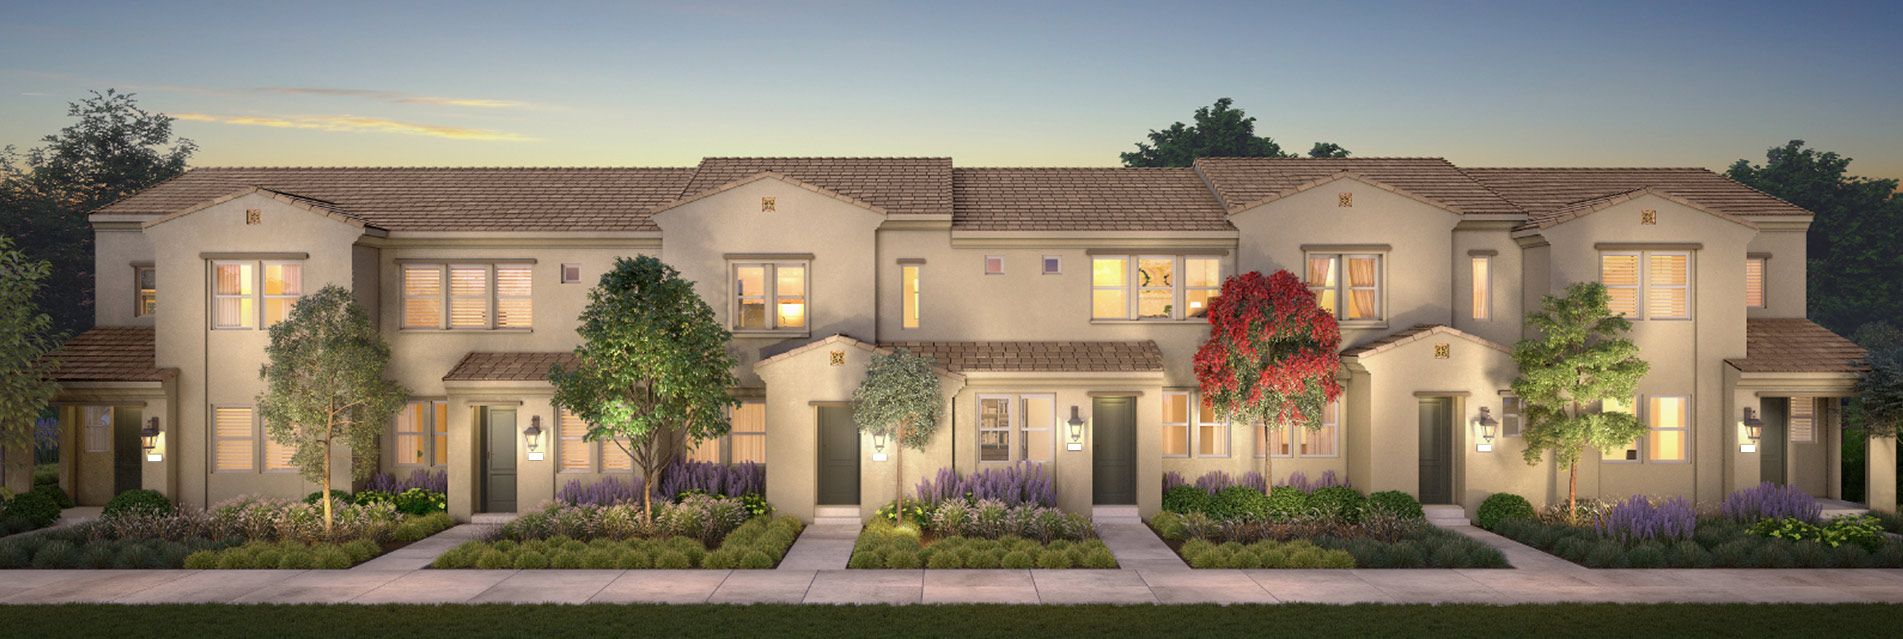 Citron at bedford in corona ca new homes floor plans by tri pointe homes